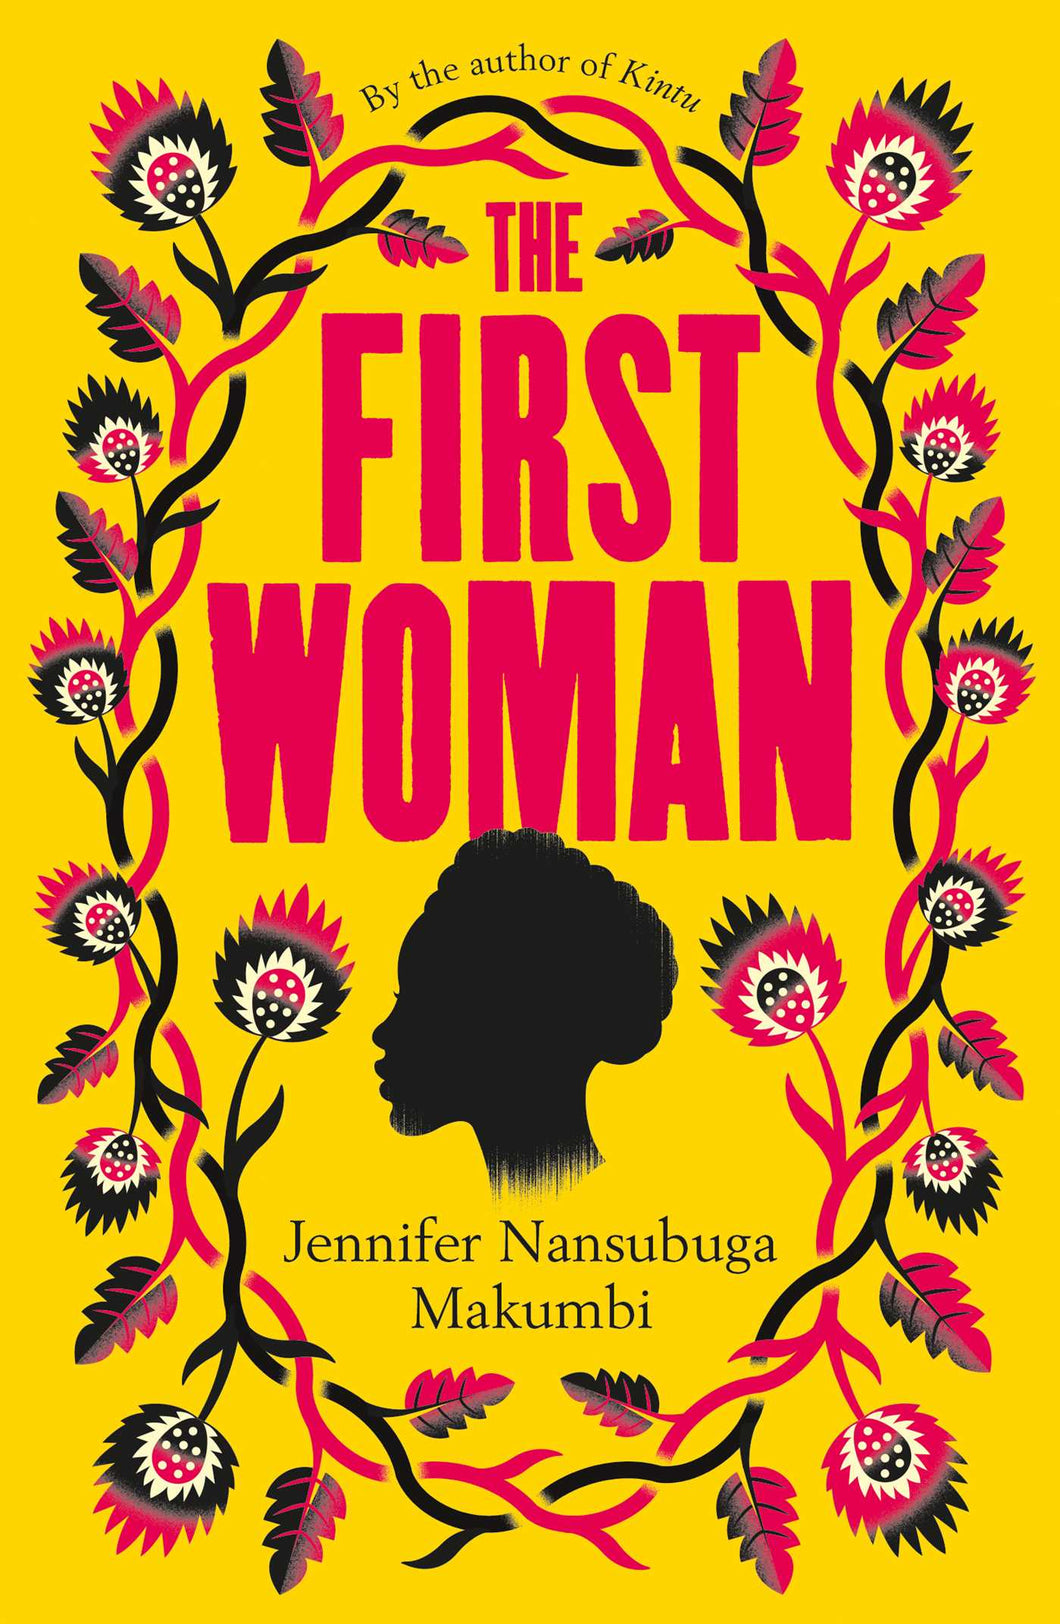 The First Woman by Jennifer Nansubuga Makumbi